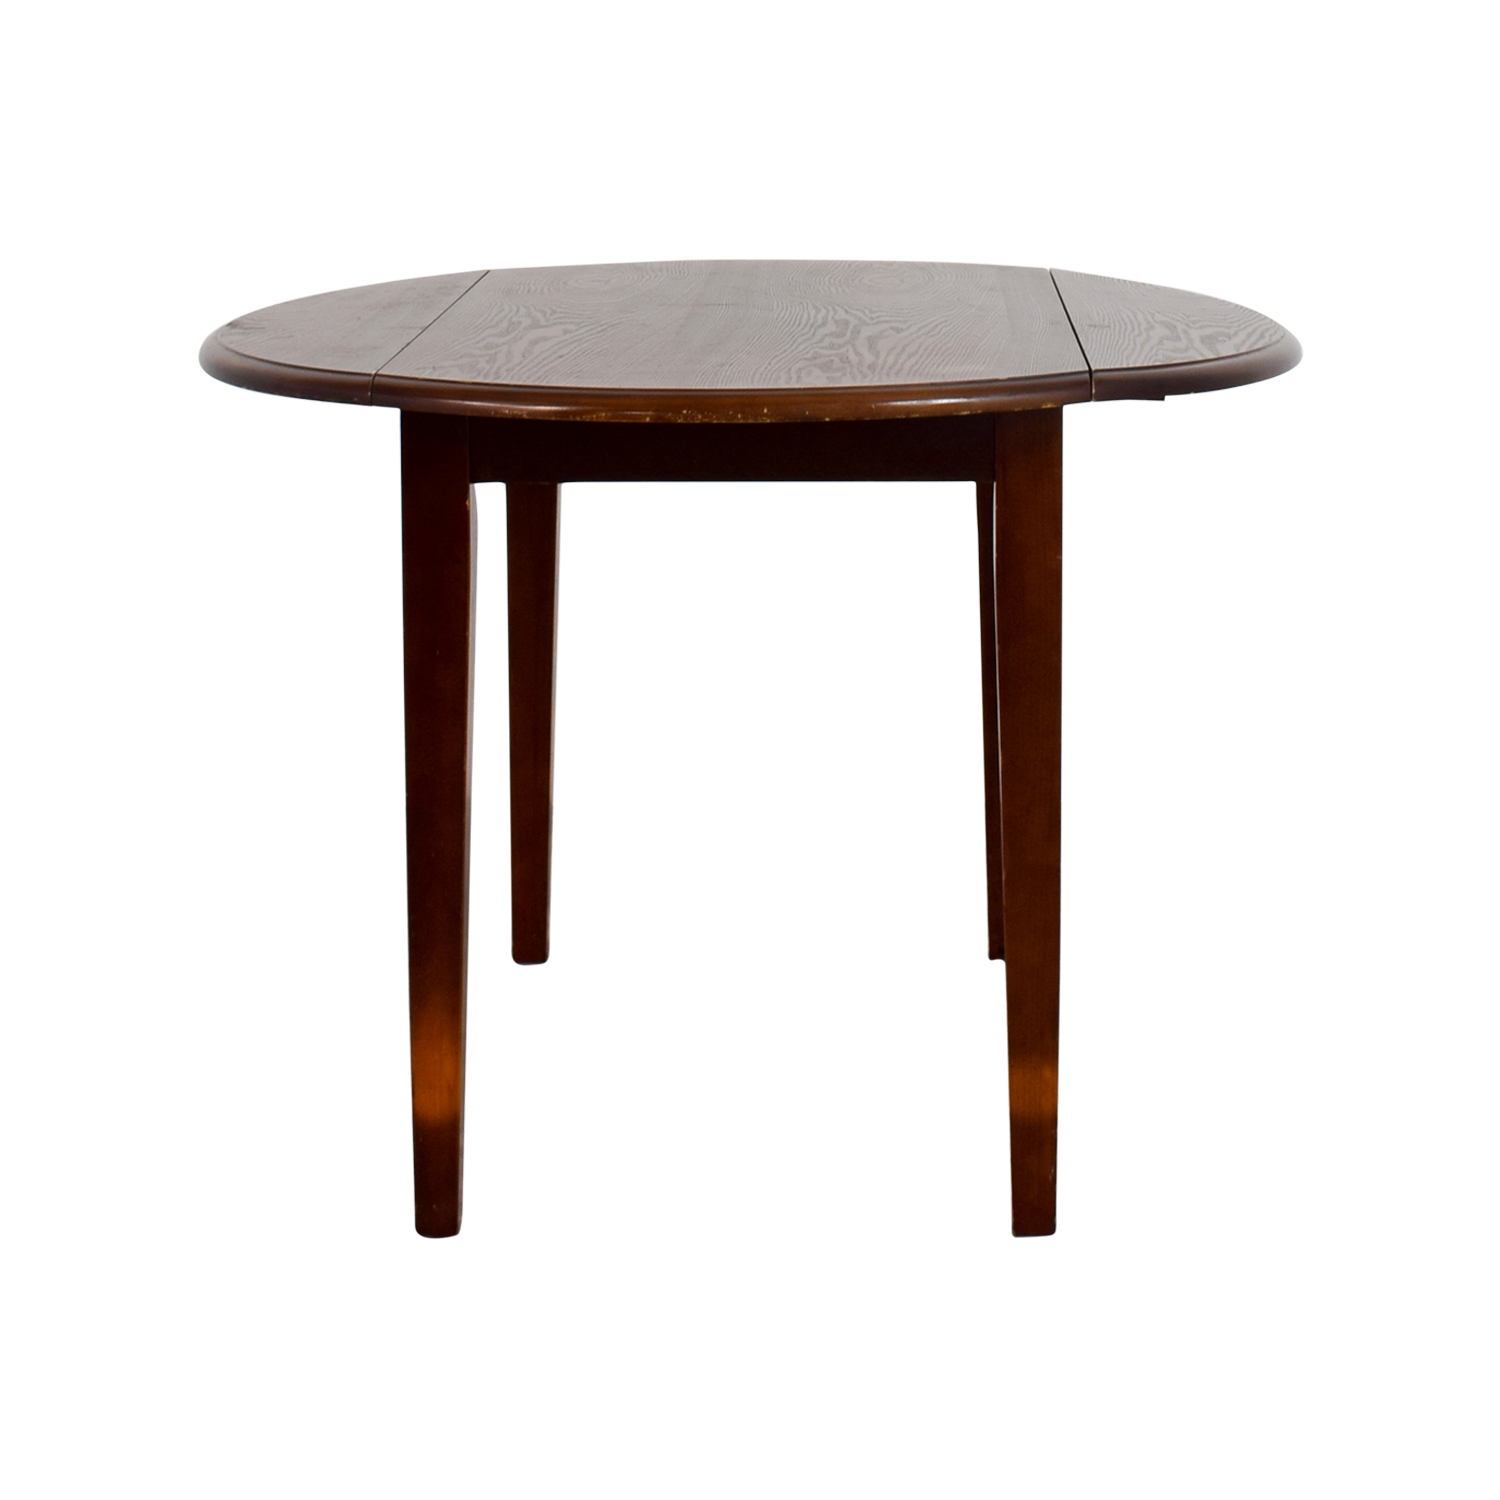 76 off west elm west elm terra dining table tables for Table transformable